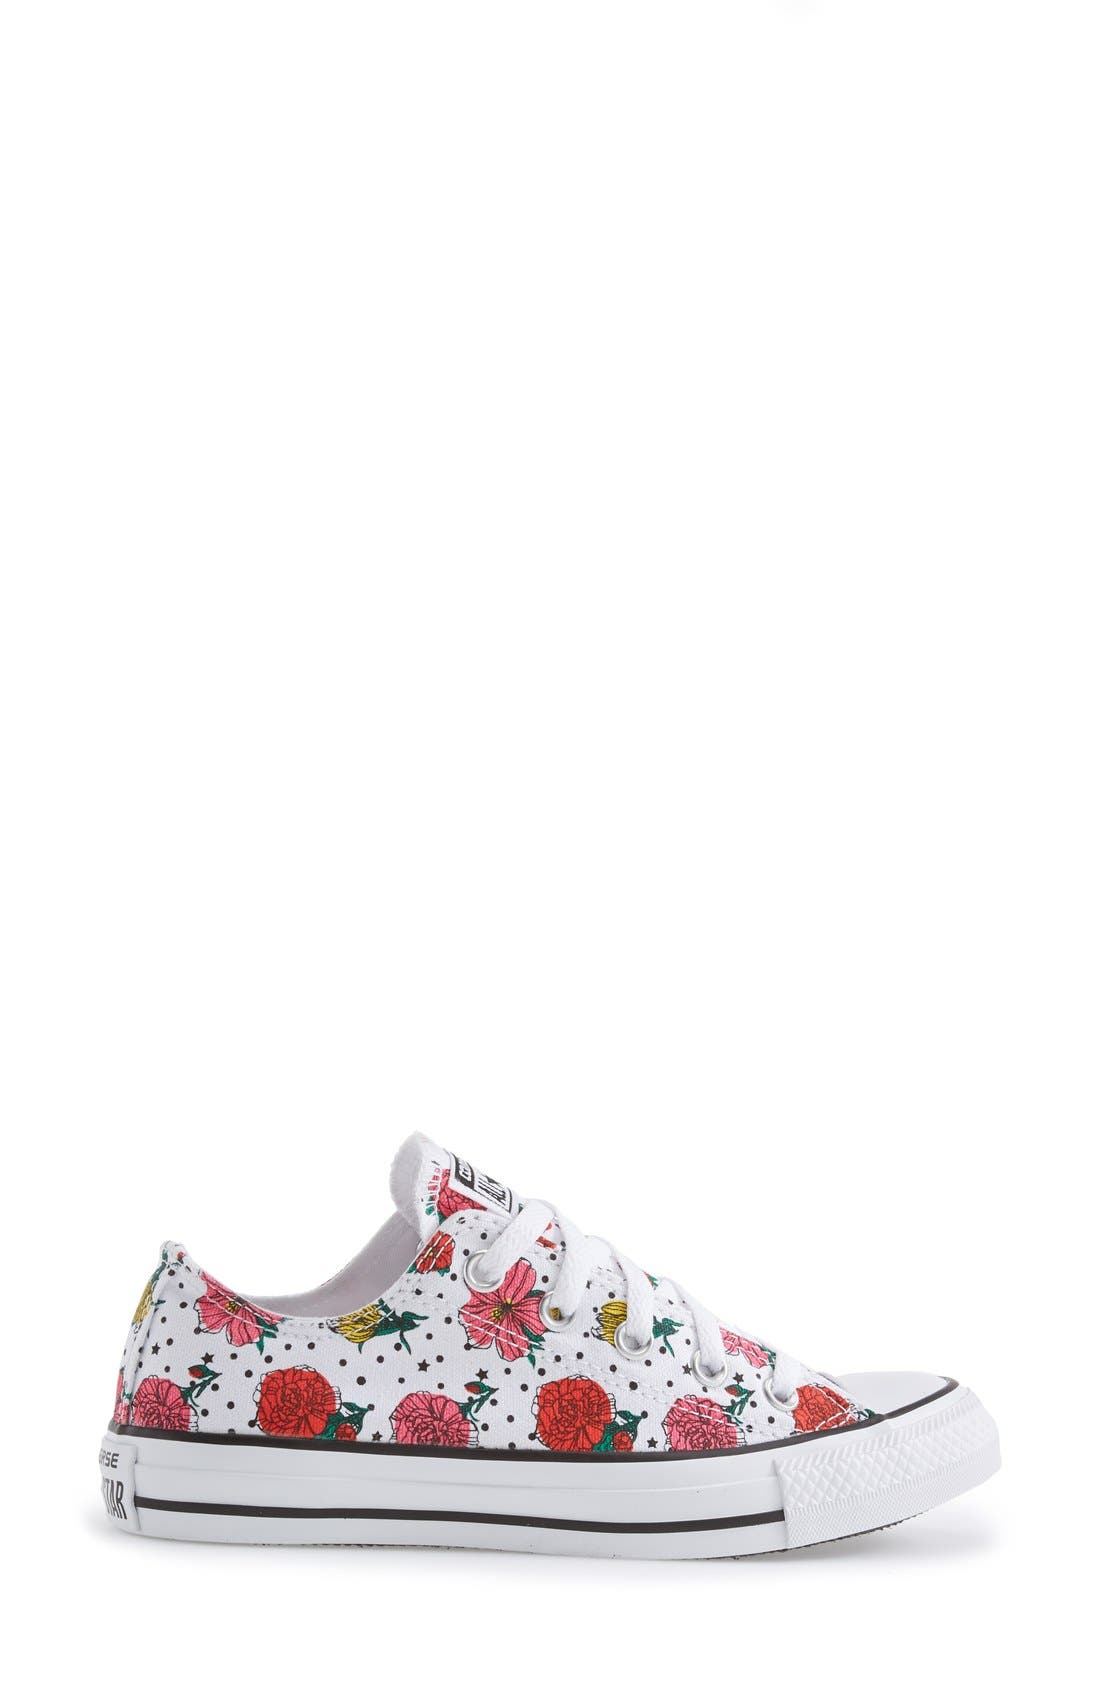 Alternate Image 5  - Converse Chuck Taylor® All Star® Floral Polka Dot Low Top Sneaker (Women)